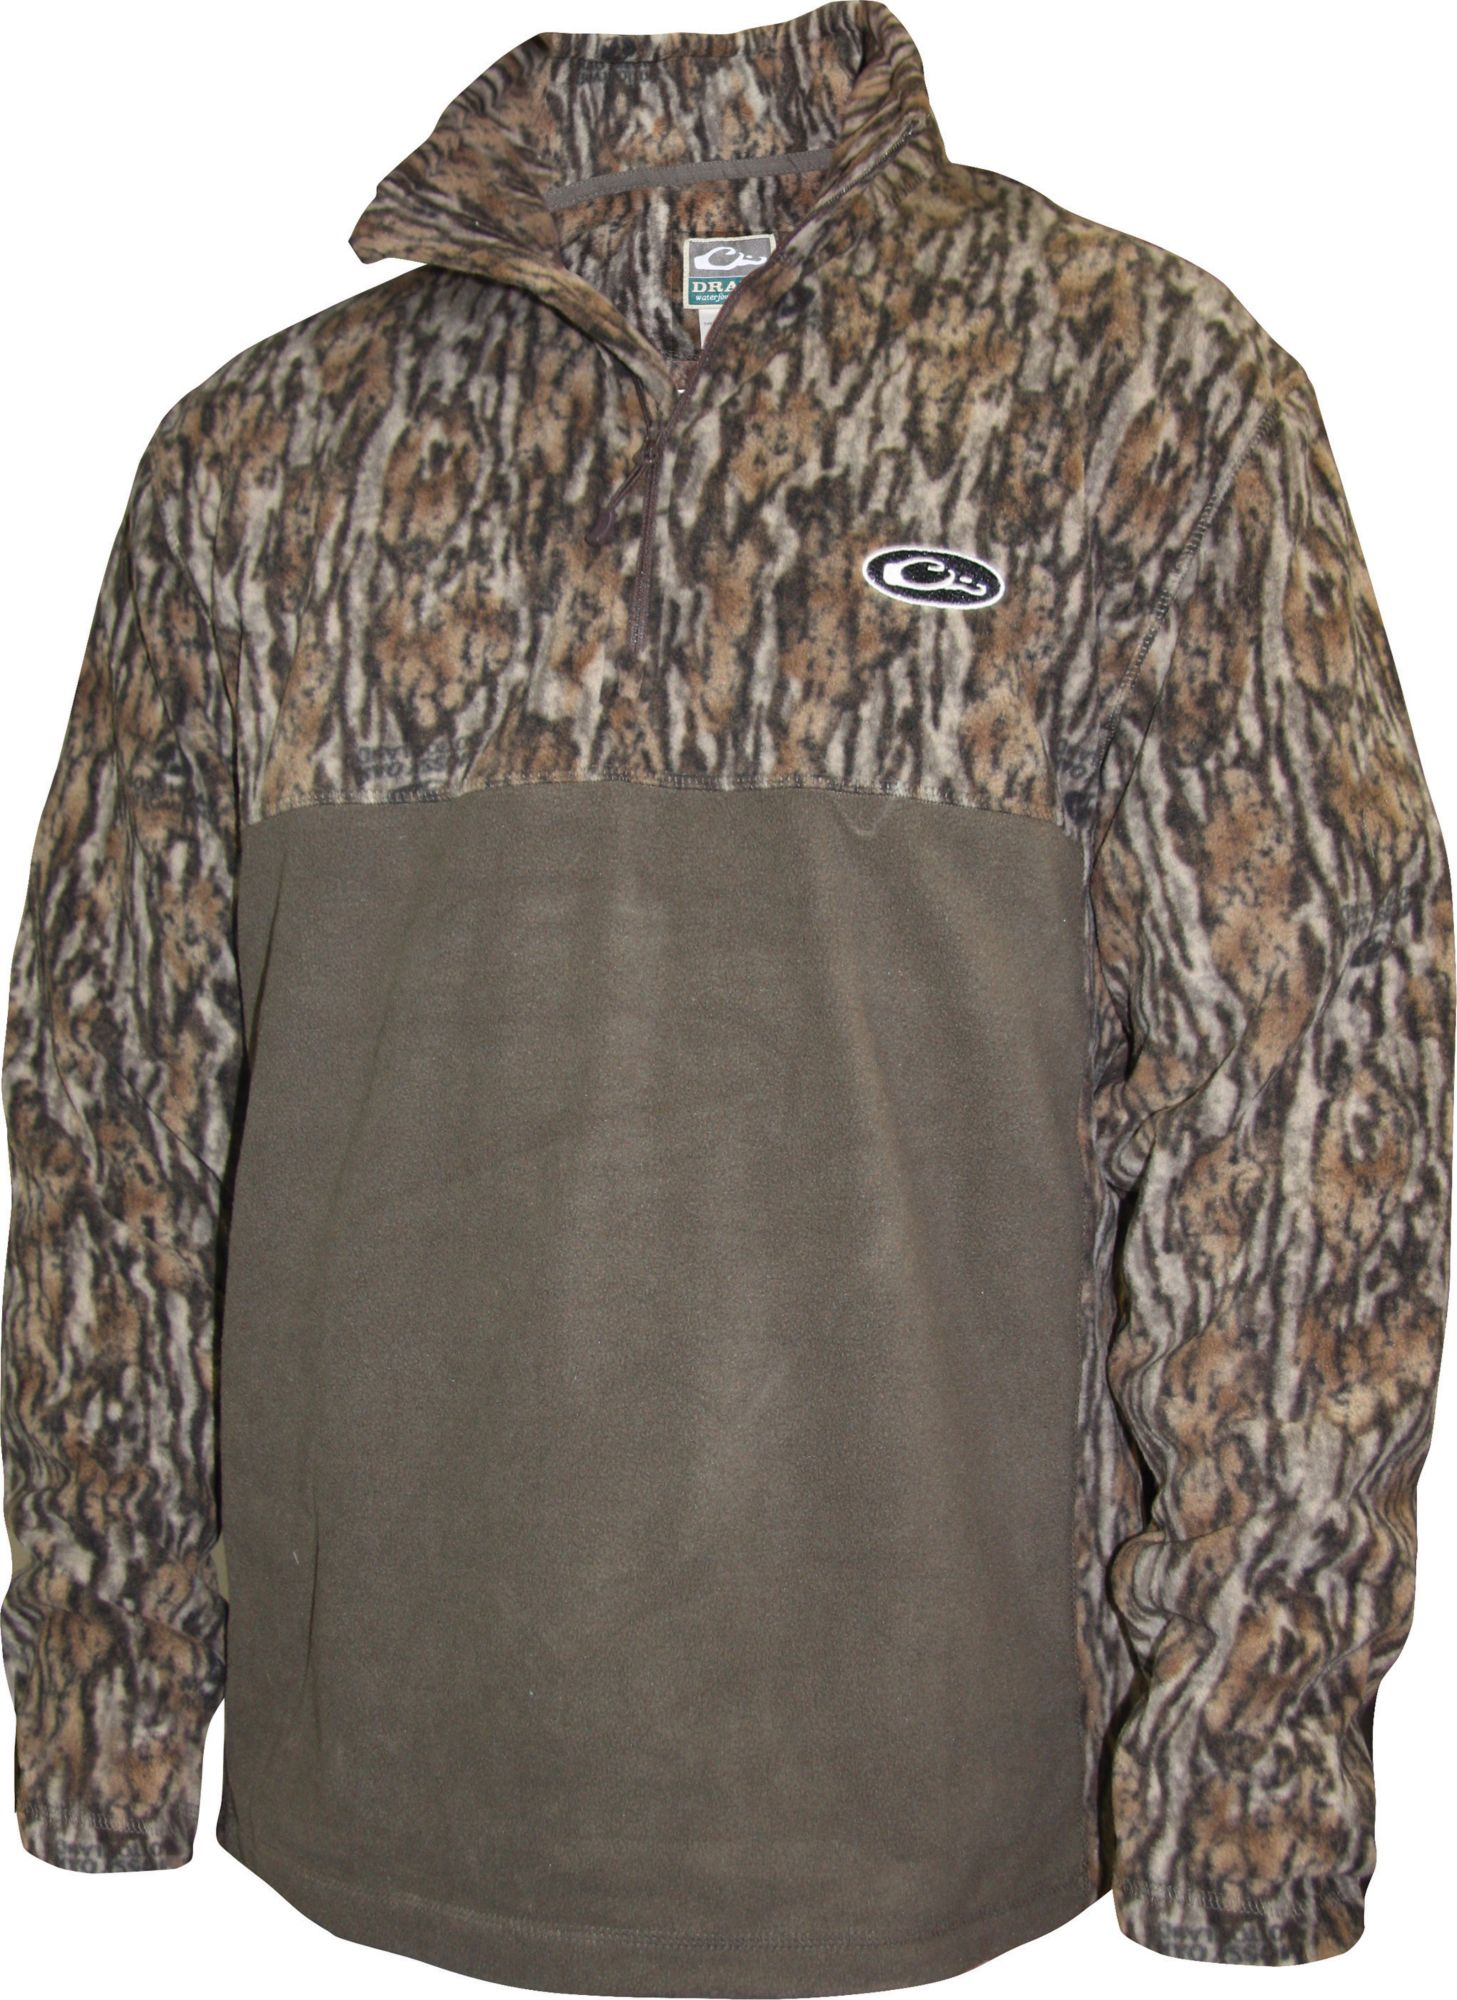 Drake Waterfowl Men's MST 2-Tone Camo Camp Fleece Pullover, Size: XXXL, Brown thumbnail